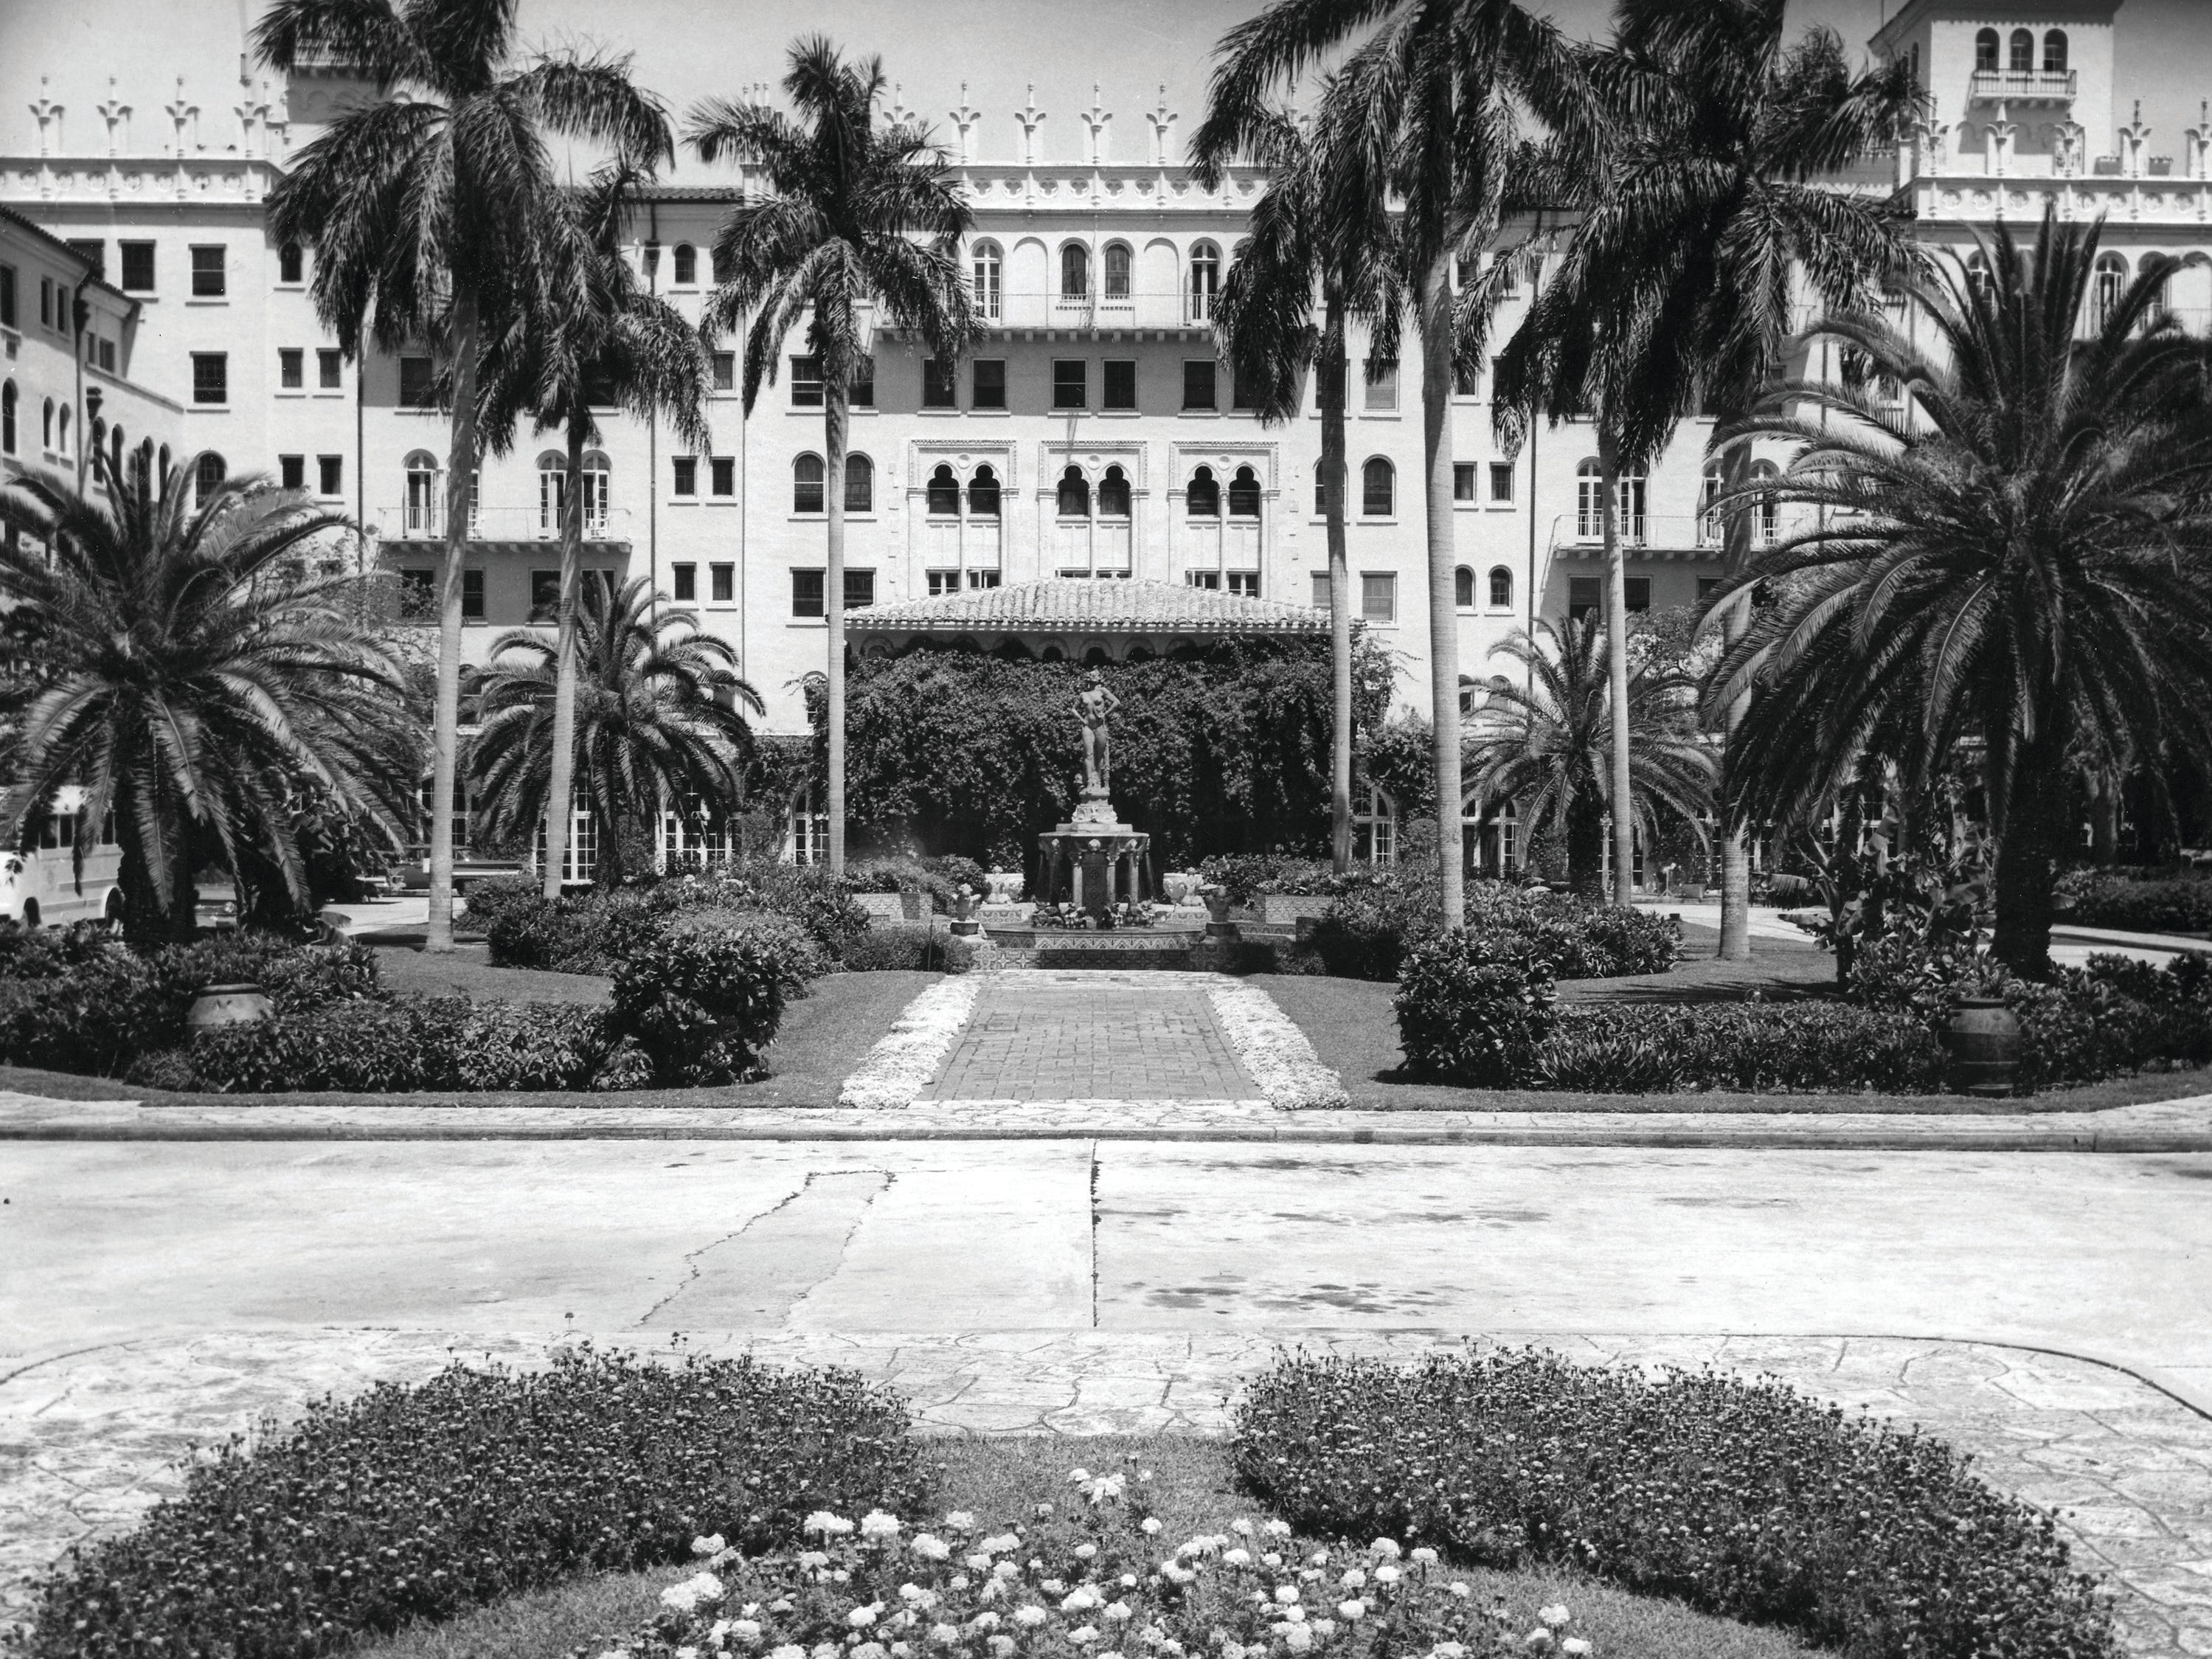 The entrance to the Cloister Inn, which changed its name to Boca Raton Resort & Club in the 1930s.